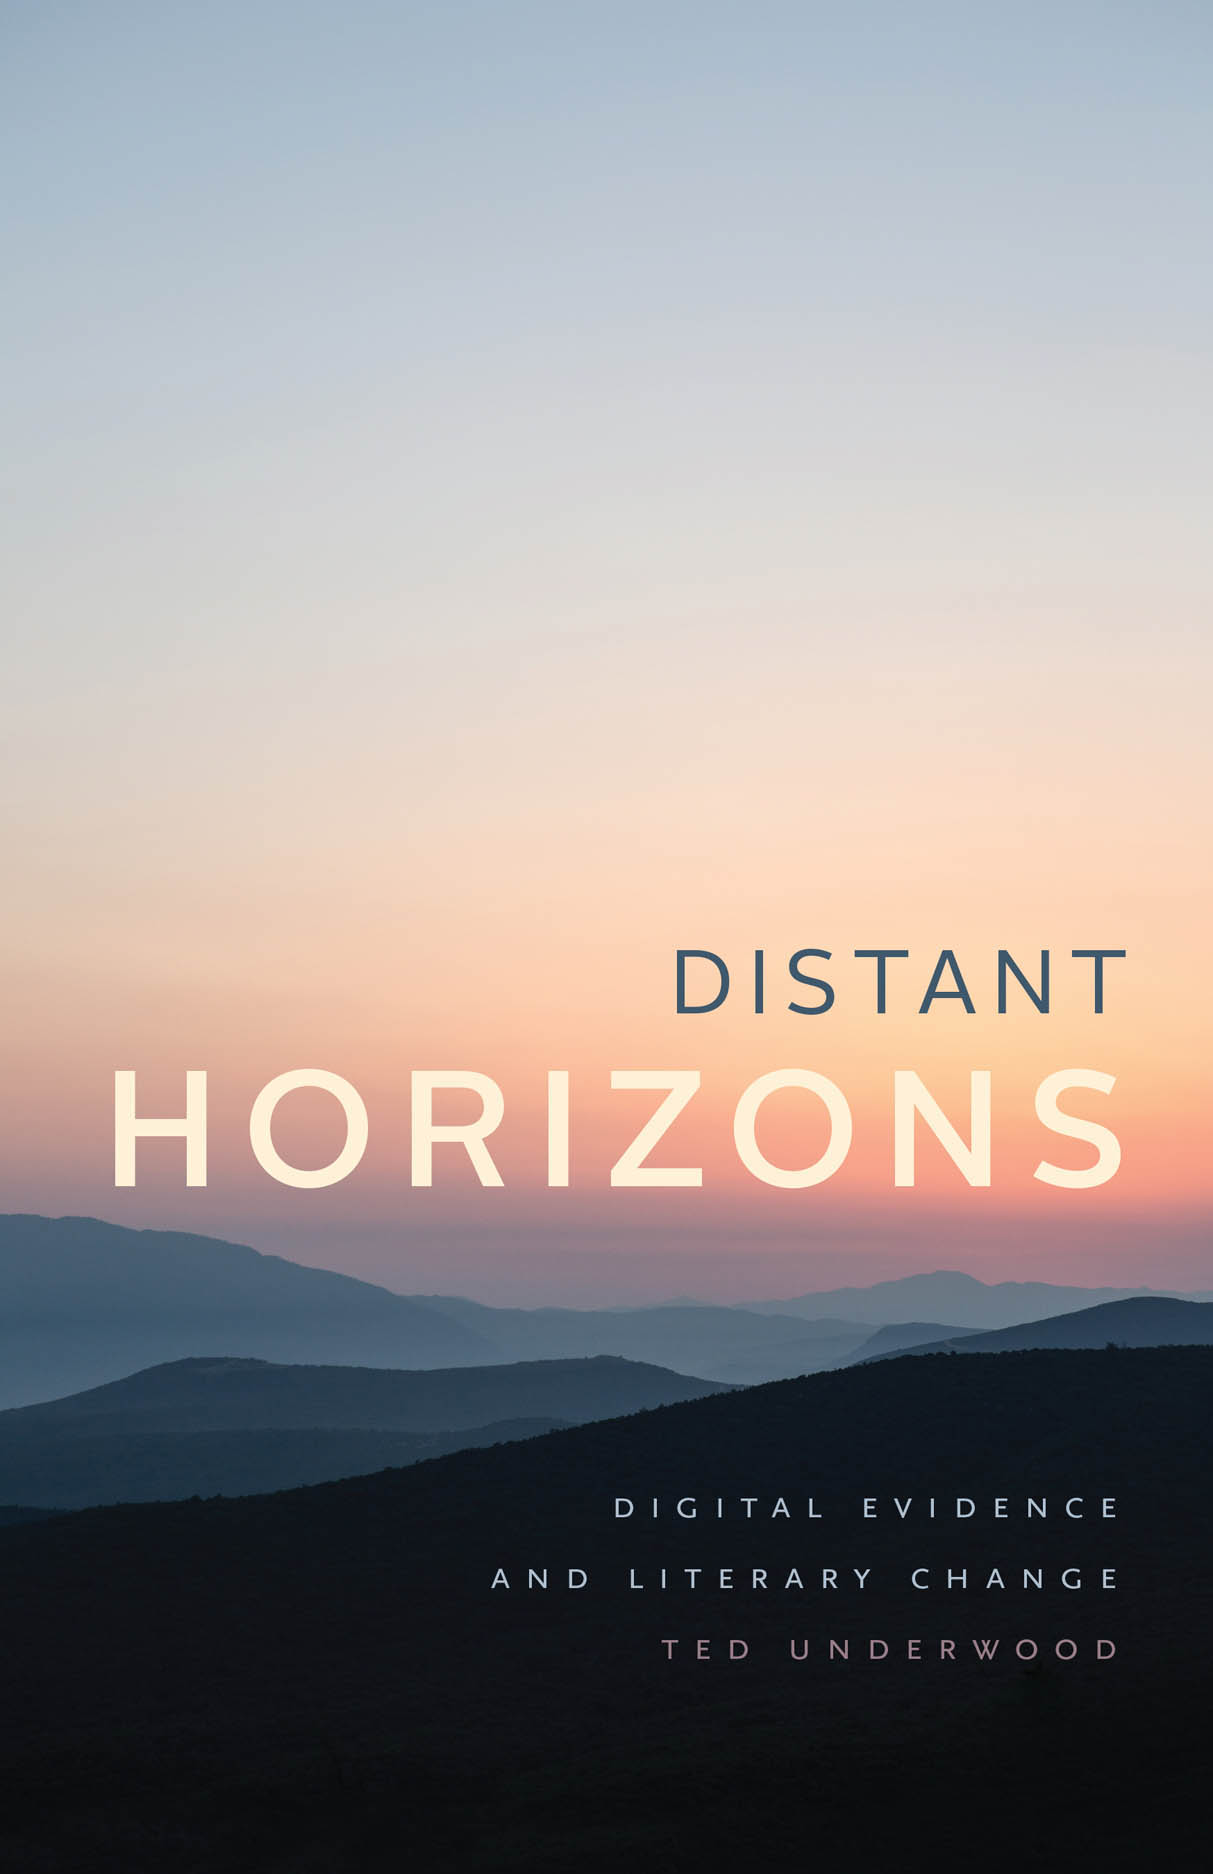 Distant Horizons: Digital Evidence and Literary Change